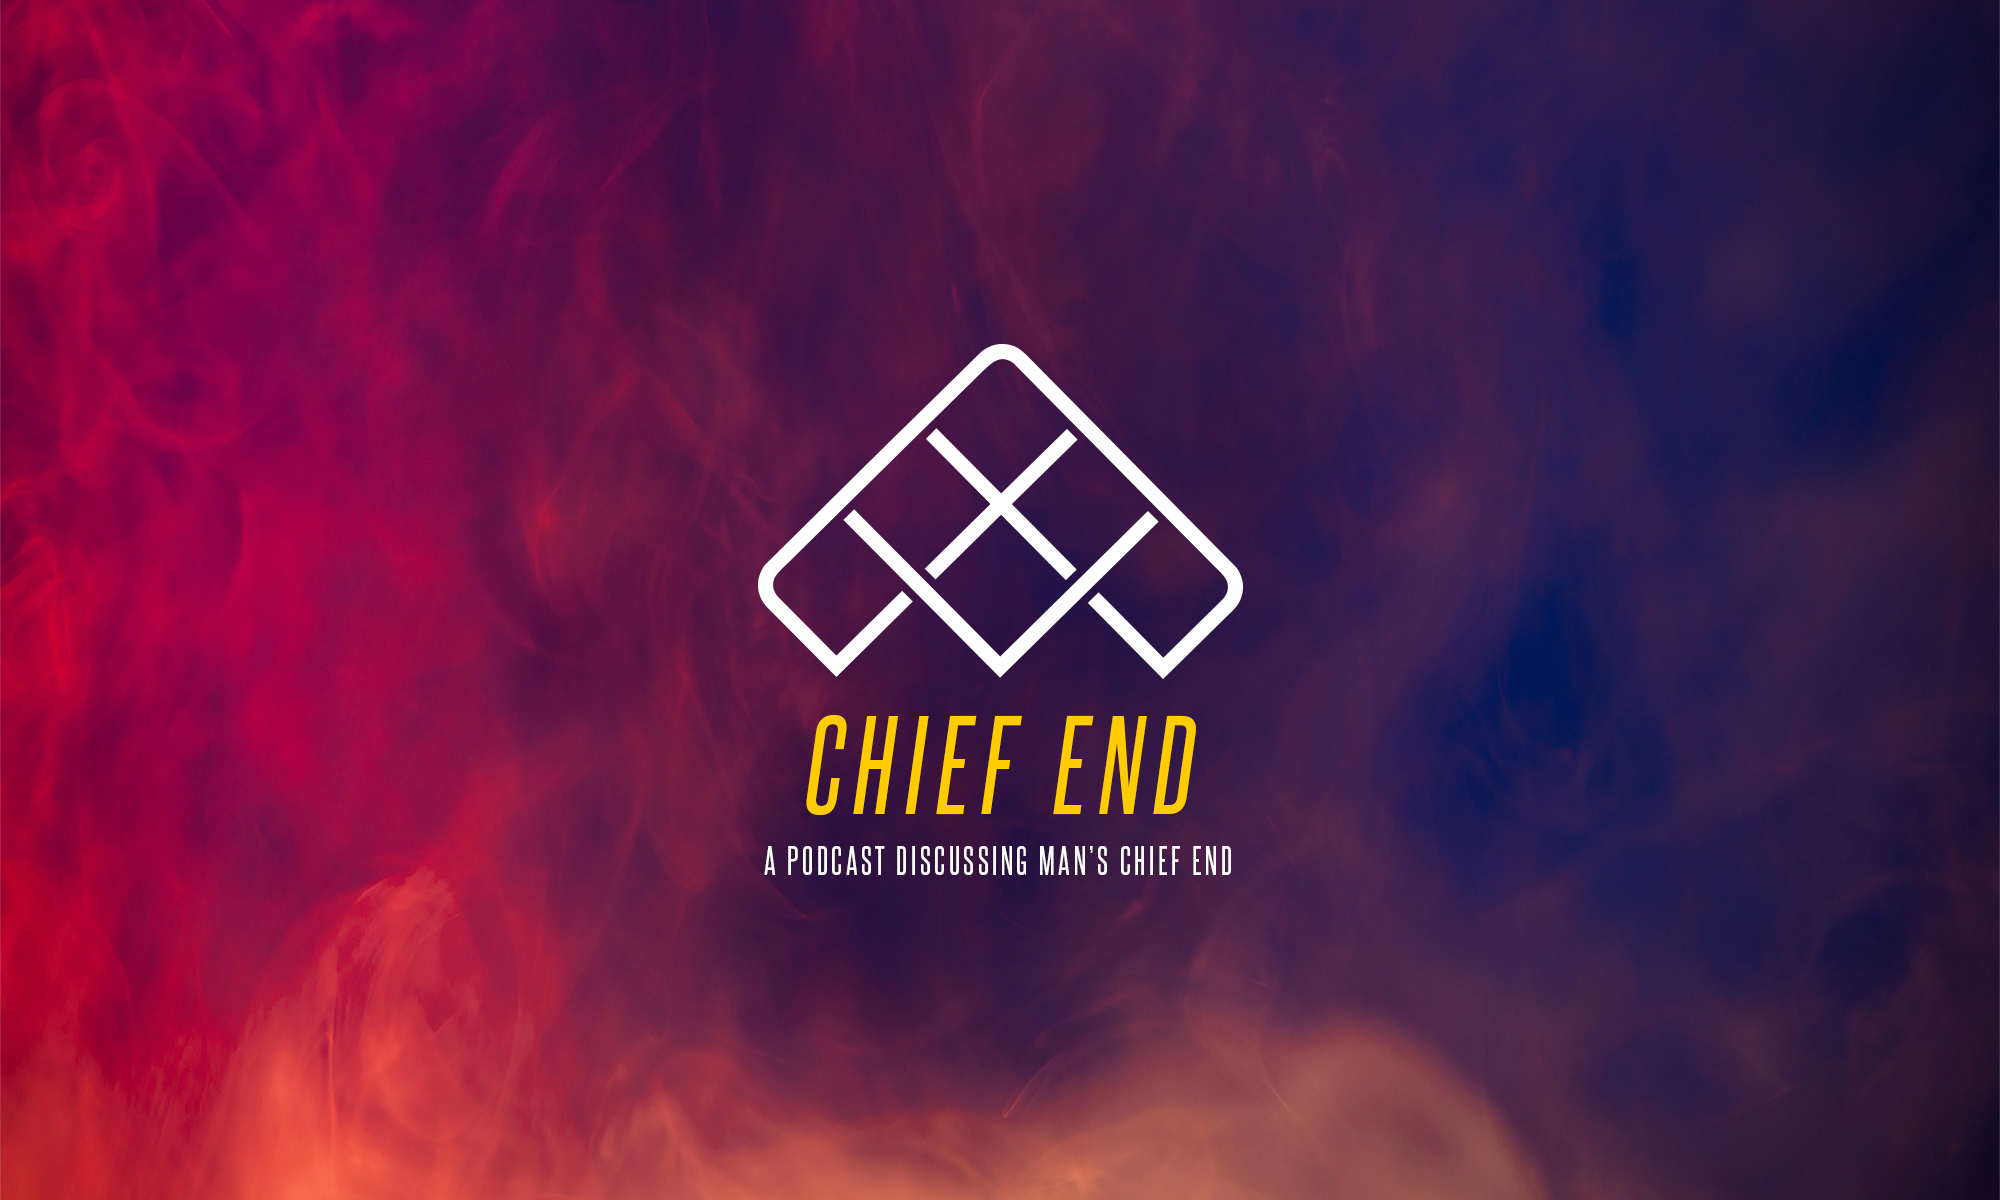 A Podcast About Man's Chief End